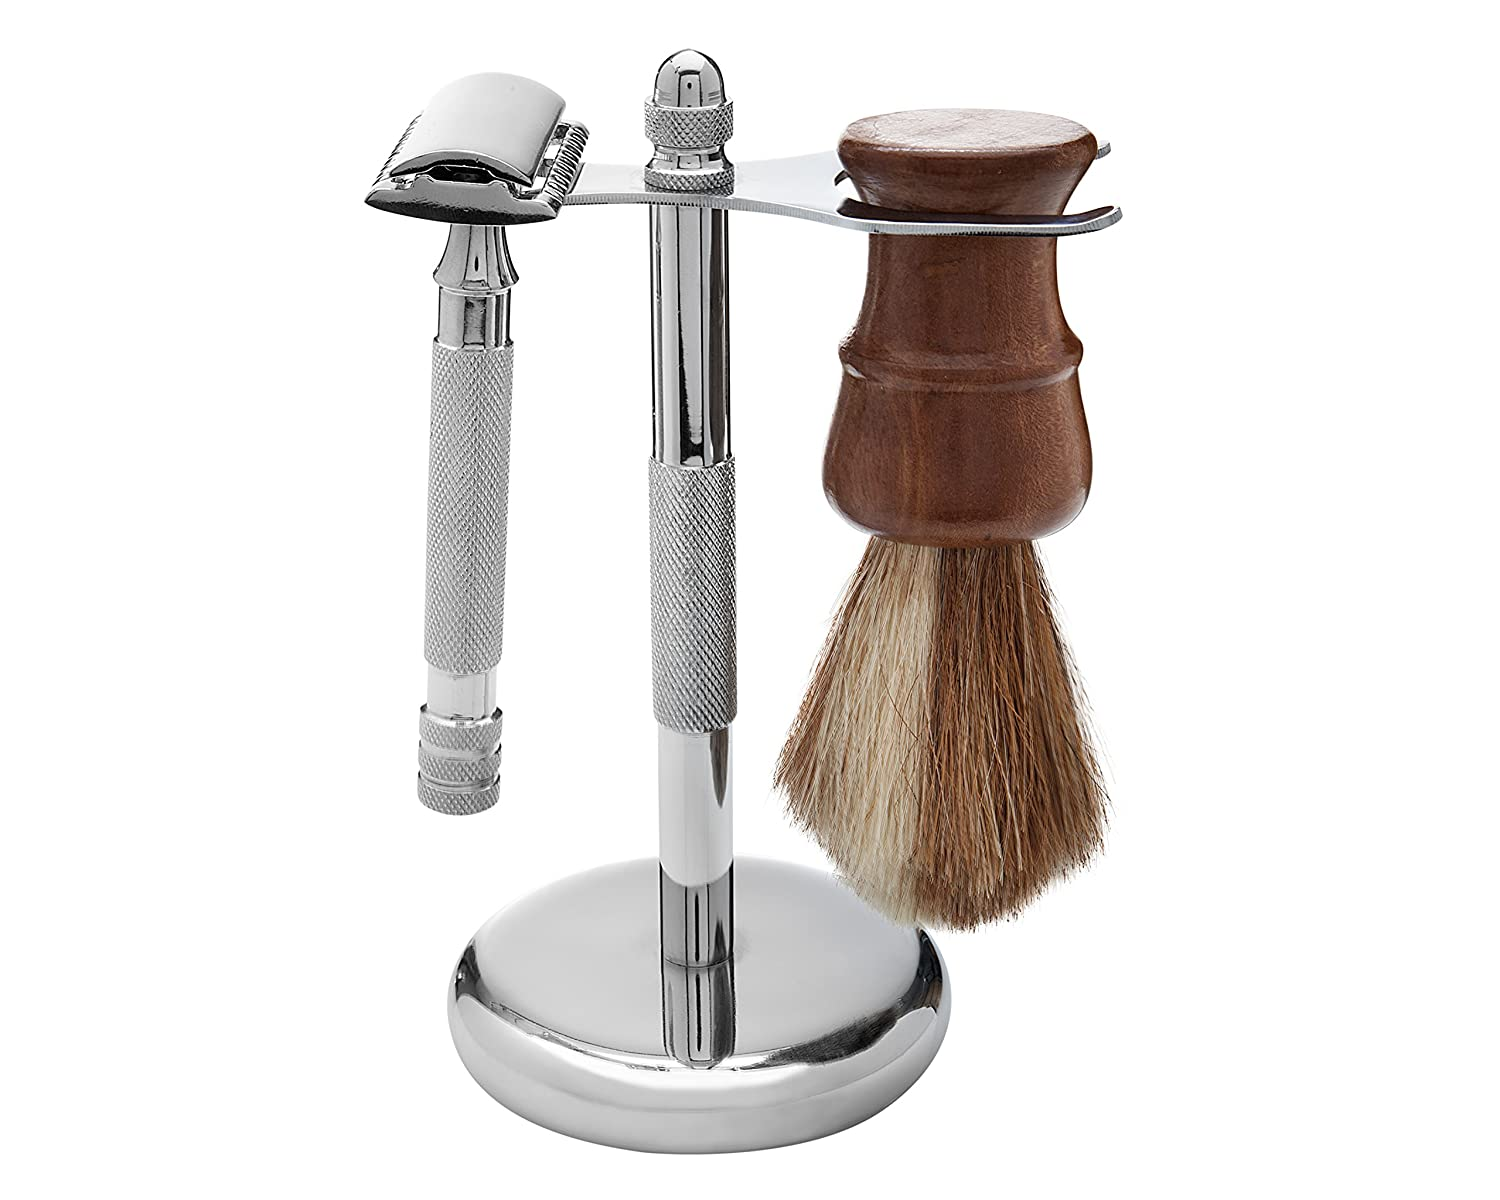 Wisper Deluxe Shaving Set, Wisper 100% Pure Badger Brush, Wisper Deluxe Chrome Razor and Brush Stand, Wisper Long Handled Safety Razor, 3-piece Deluxe Shaving Set Magnus